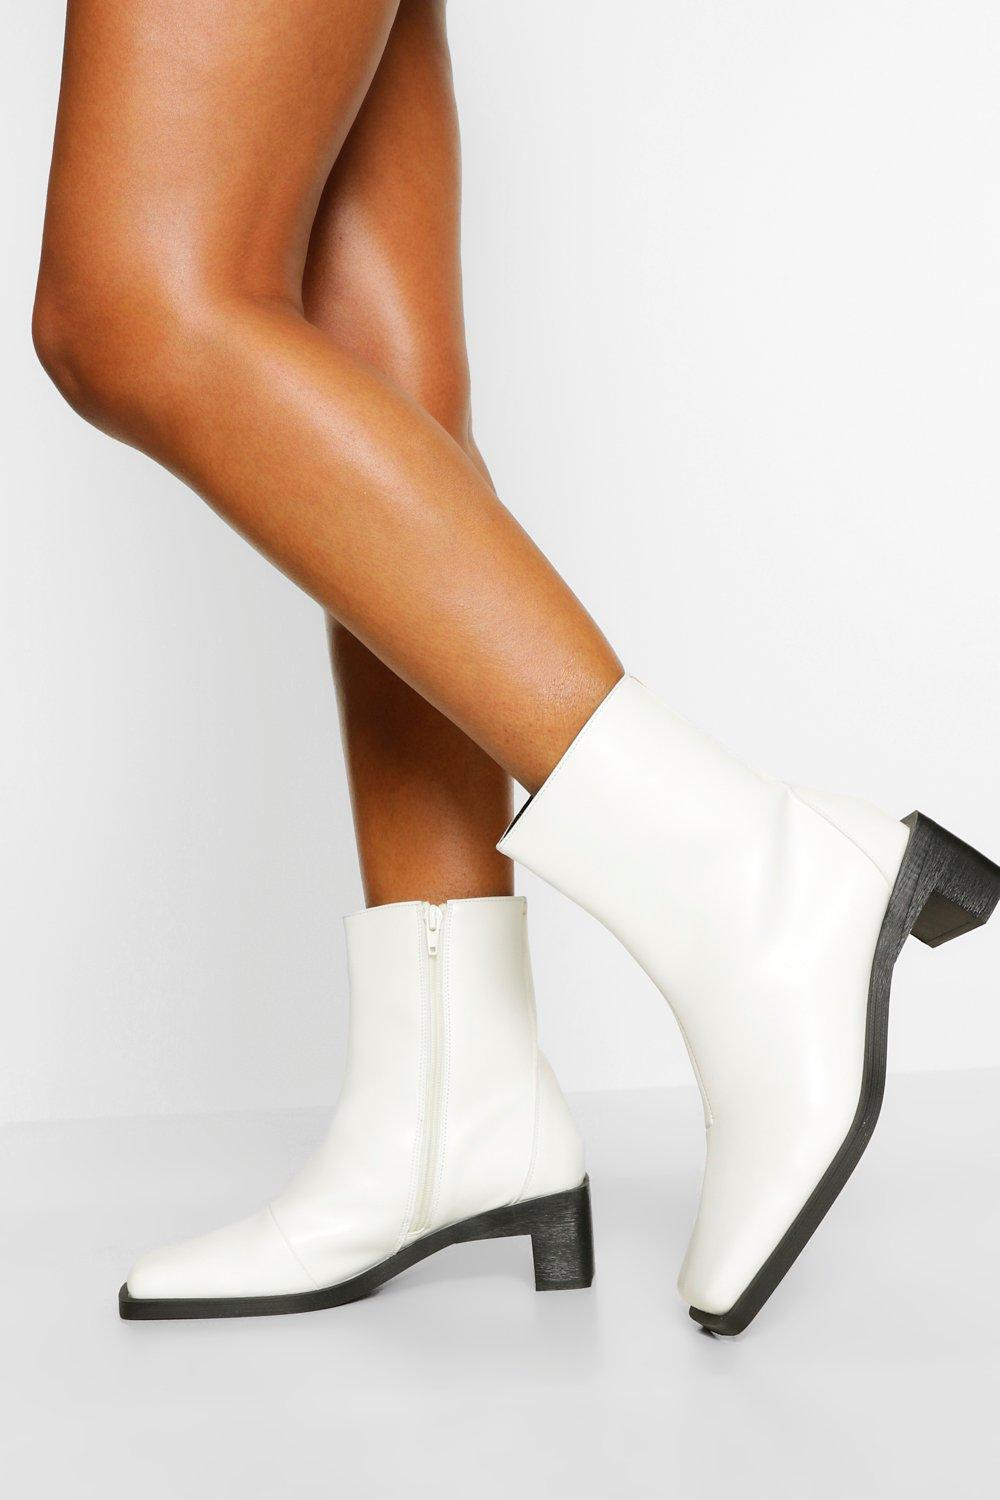 Vintage Boots- Buy Winter Retro Boots Womens Interest Low Heel Shoe Boot - White - 10 $42.00 AT vintagedancer.com